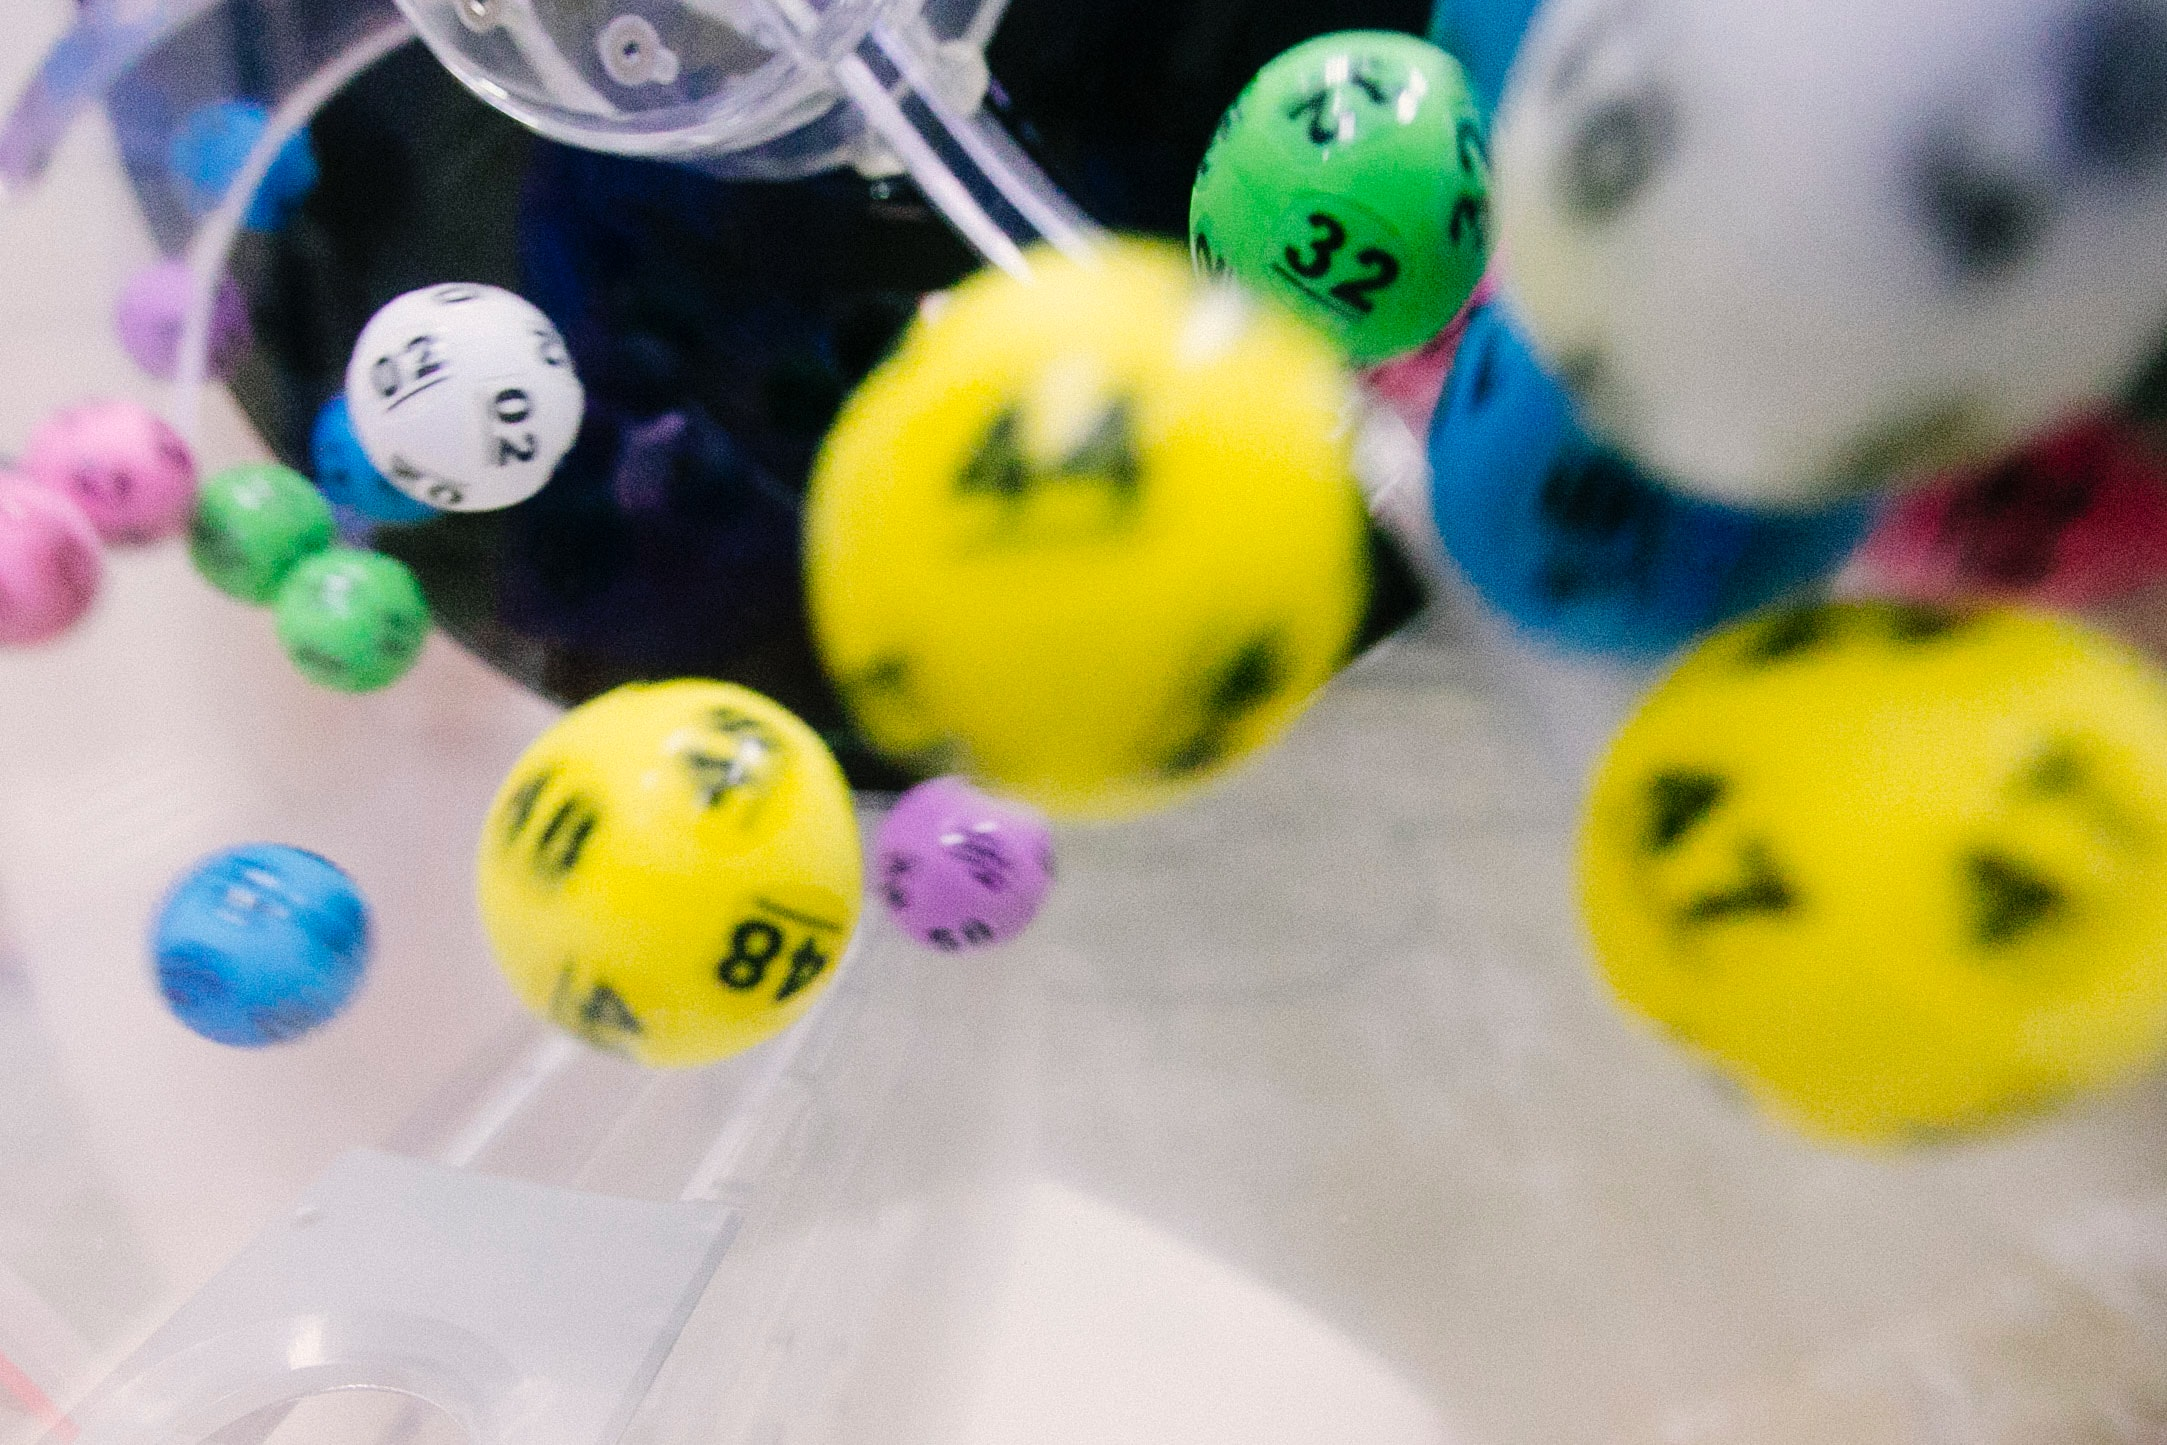 A guide suitable for online gambling beginners